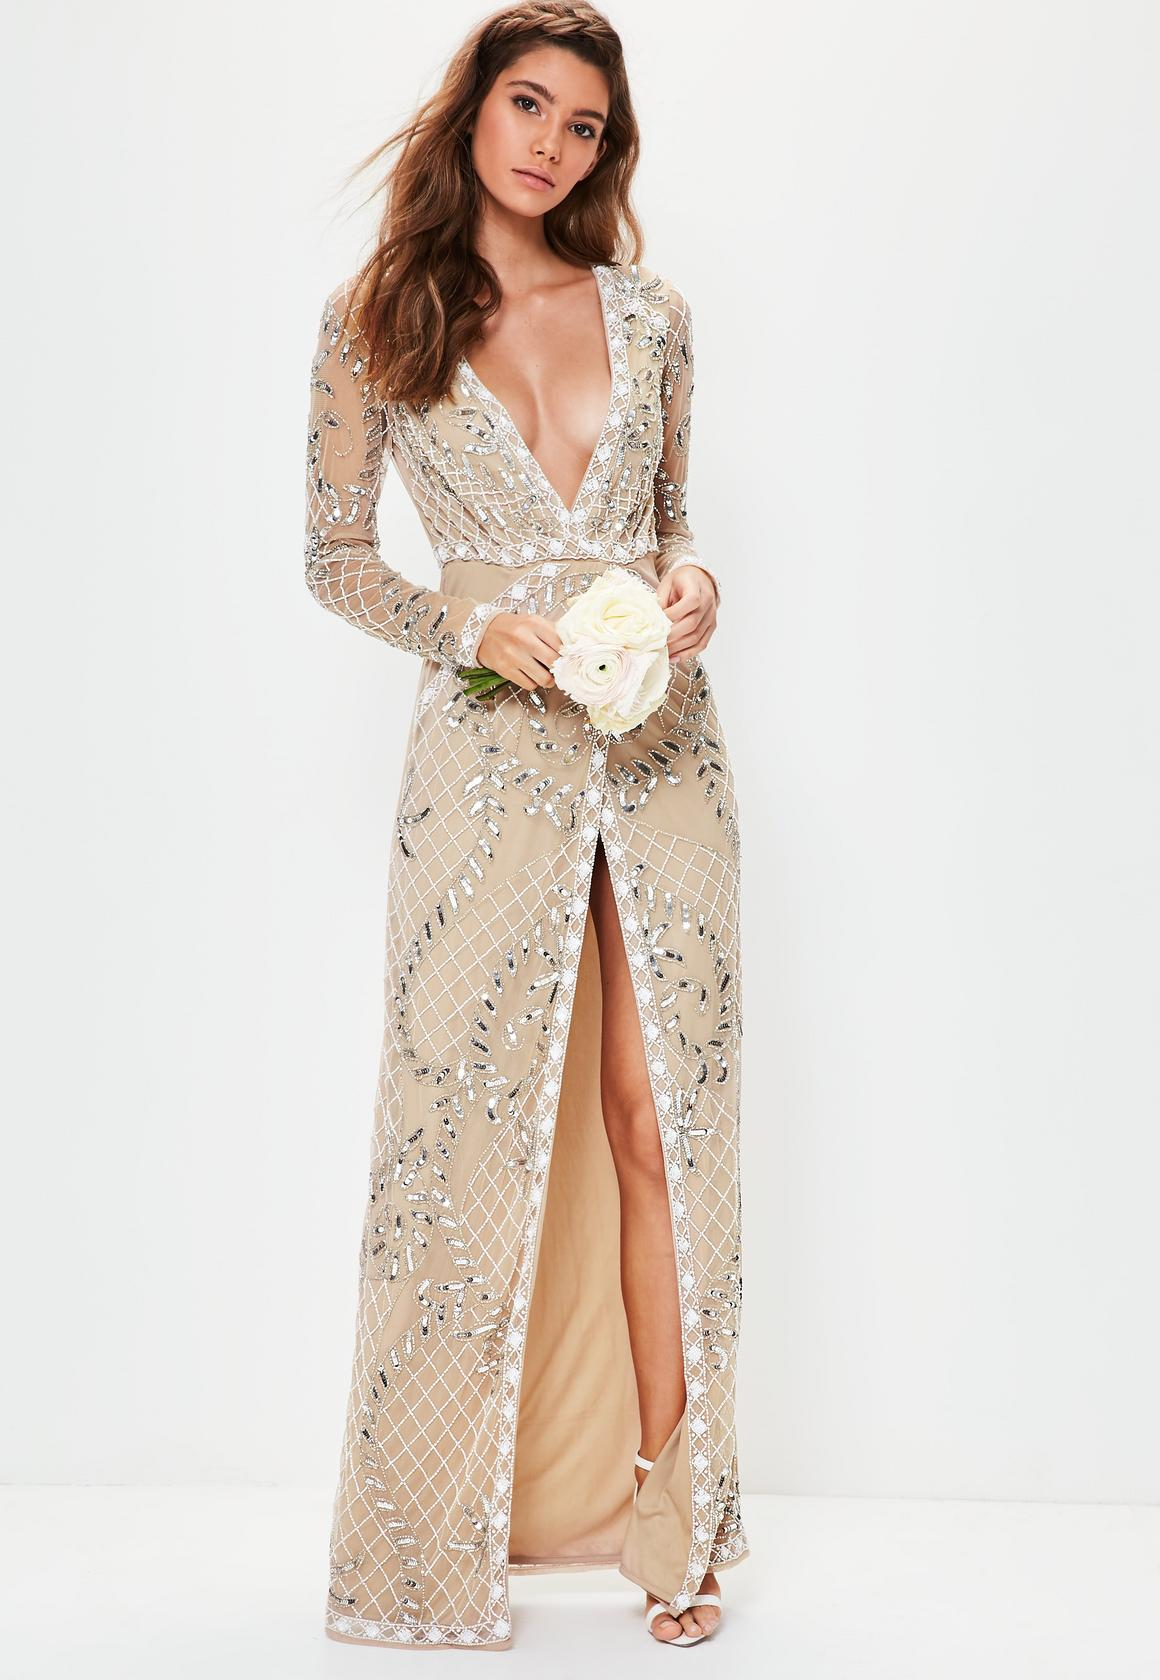 Embellished maxi dresses a perfect choice for all